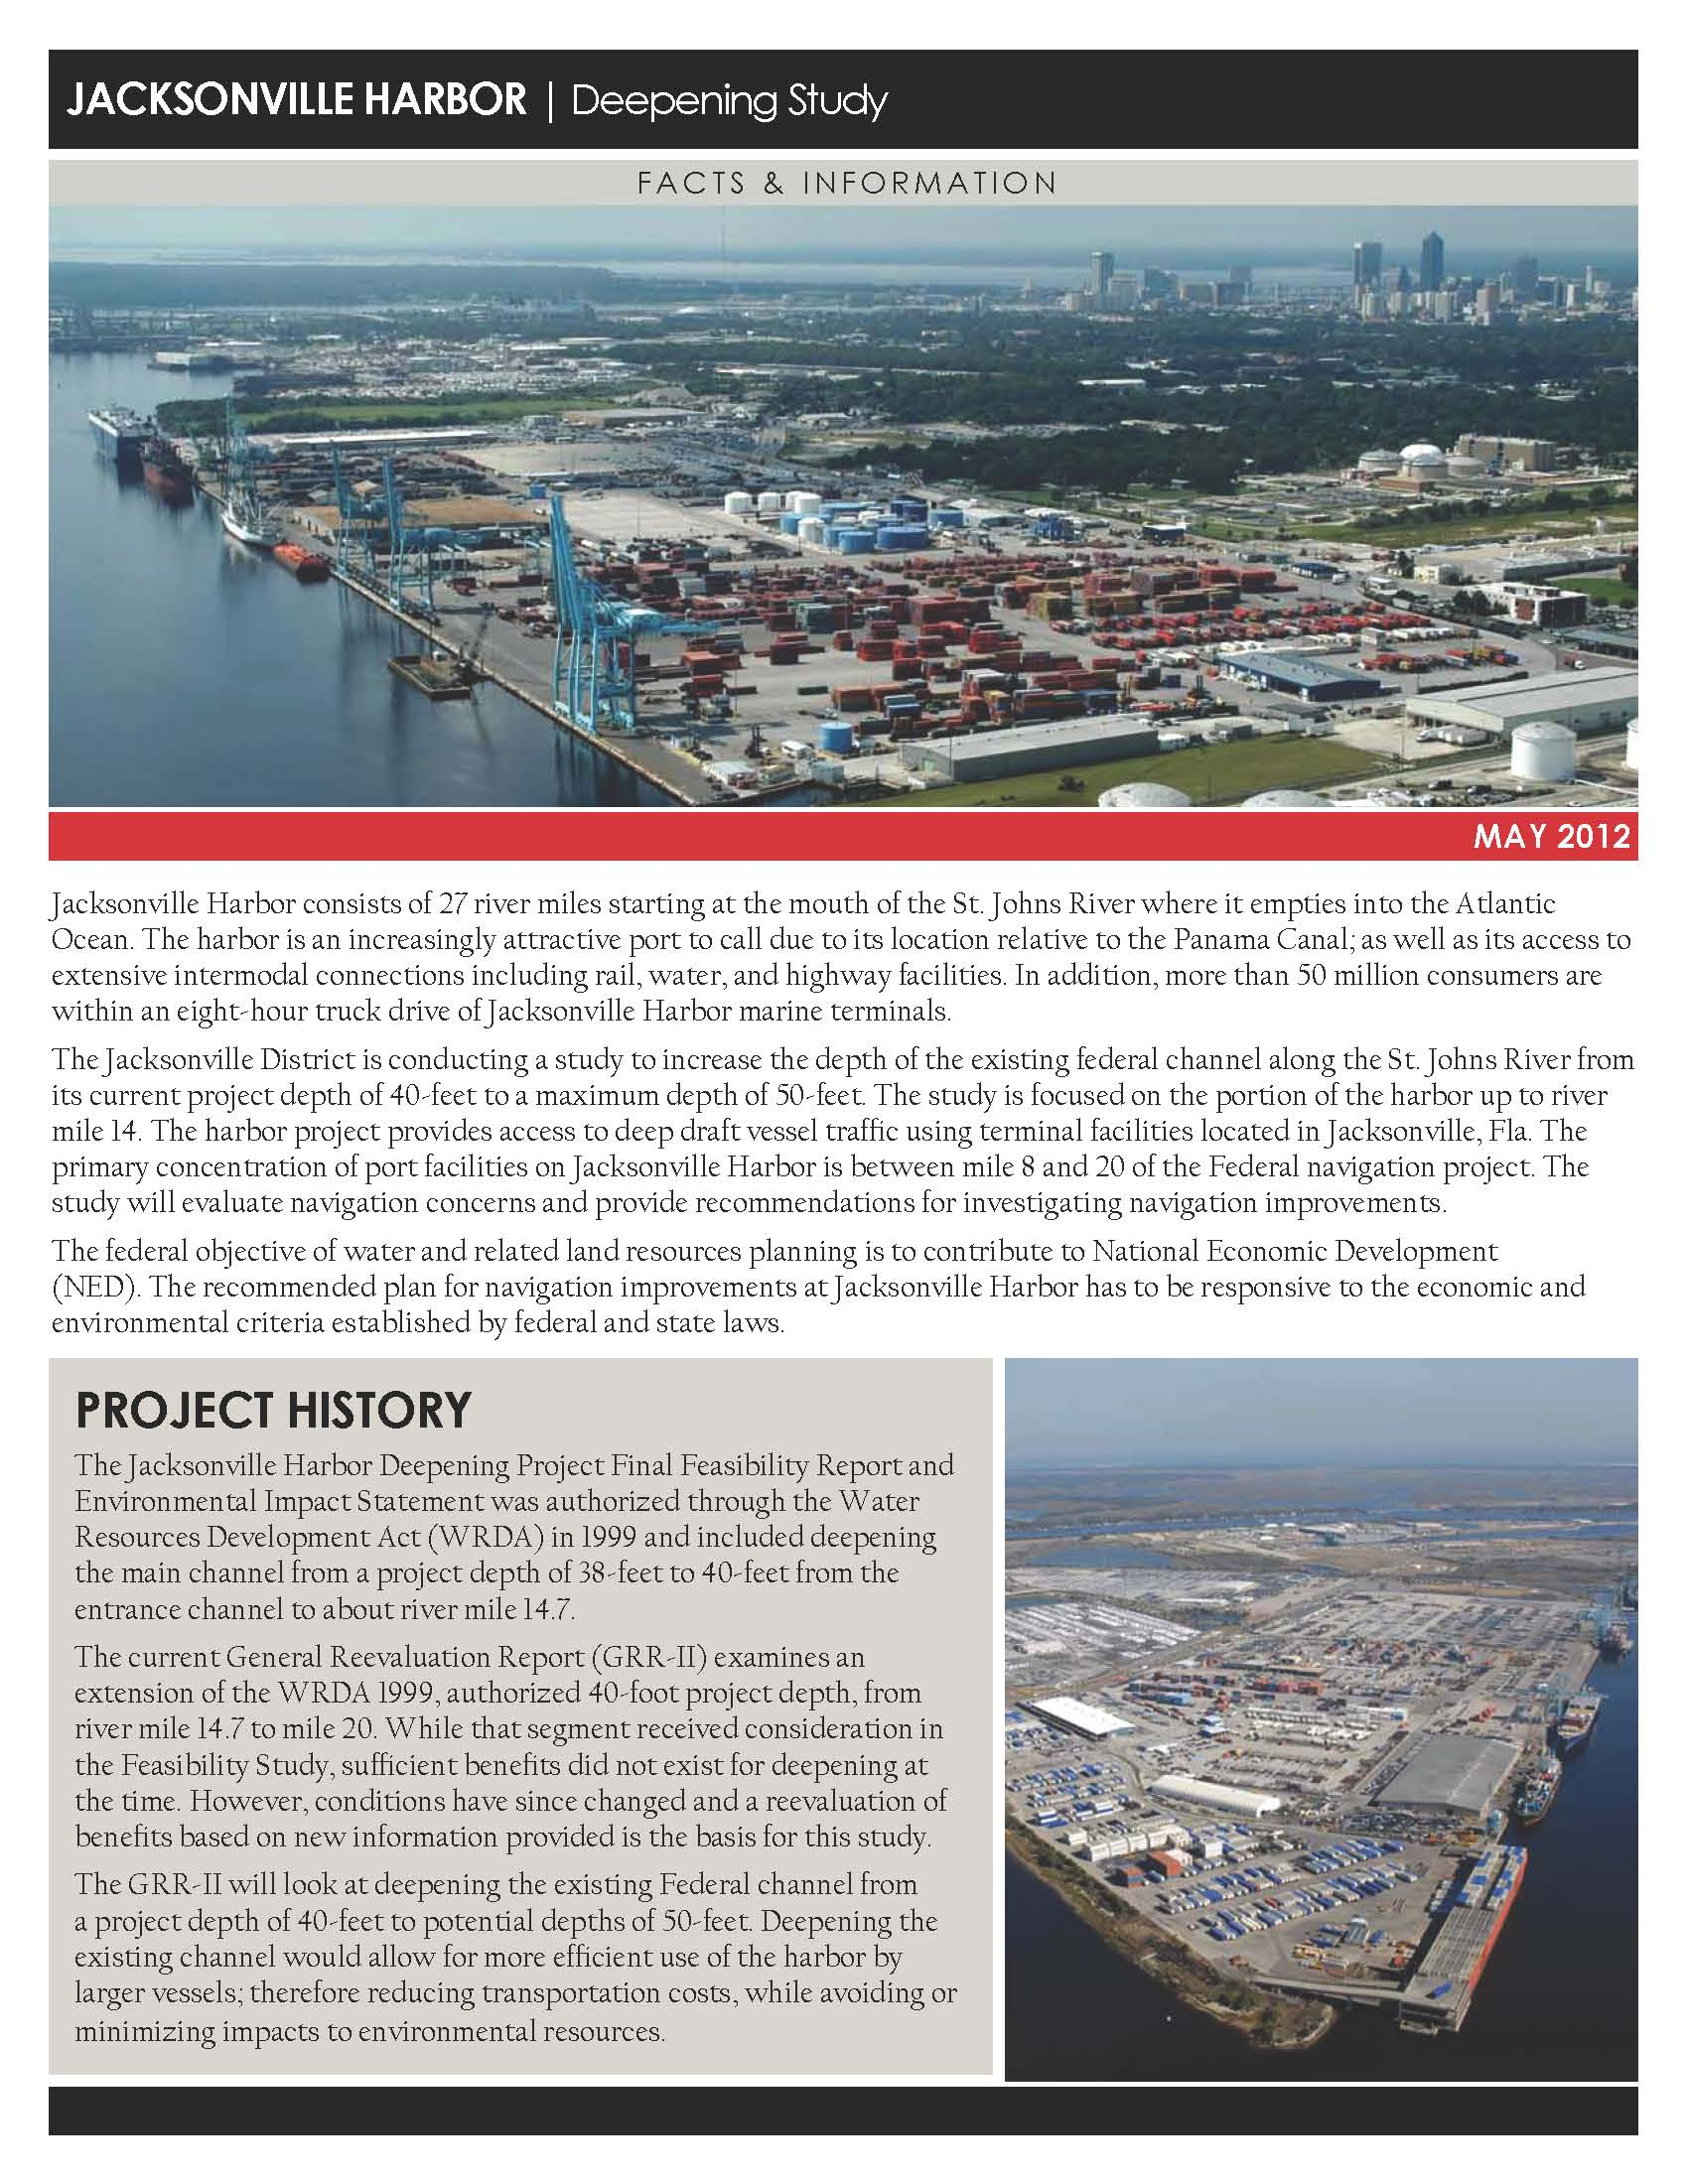 JaxHarbor Fact Sheet